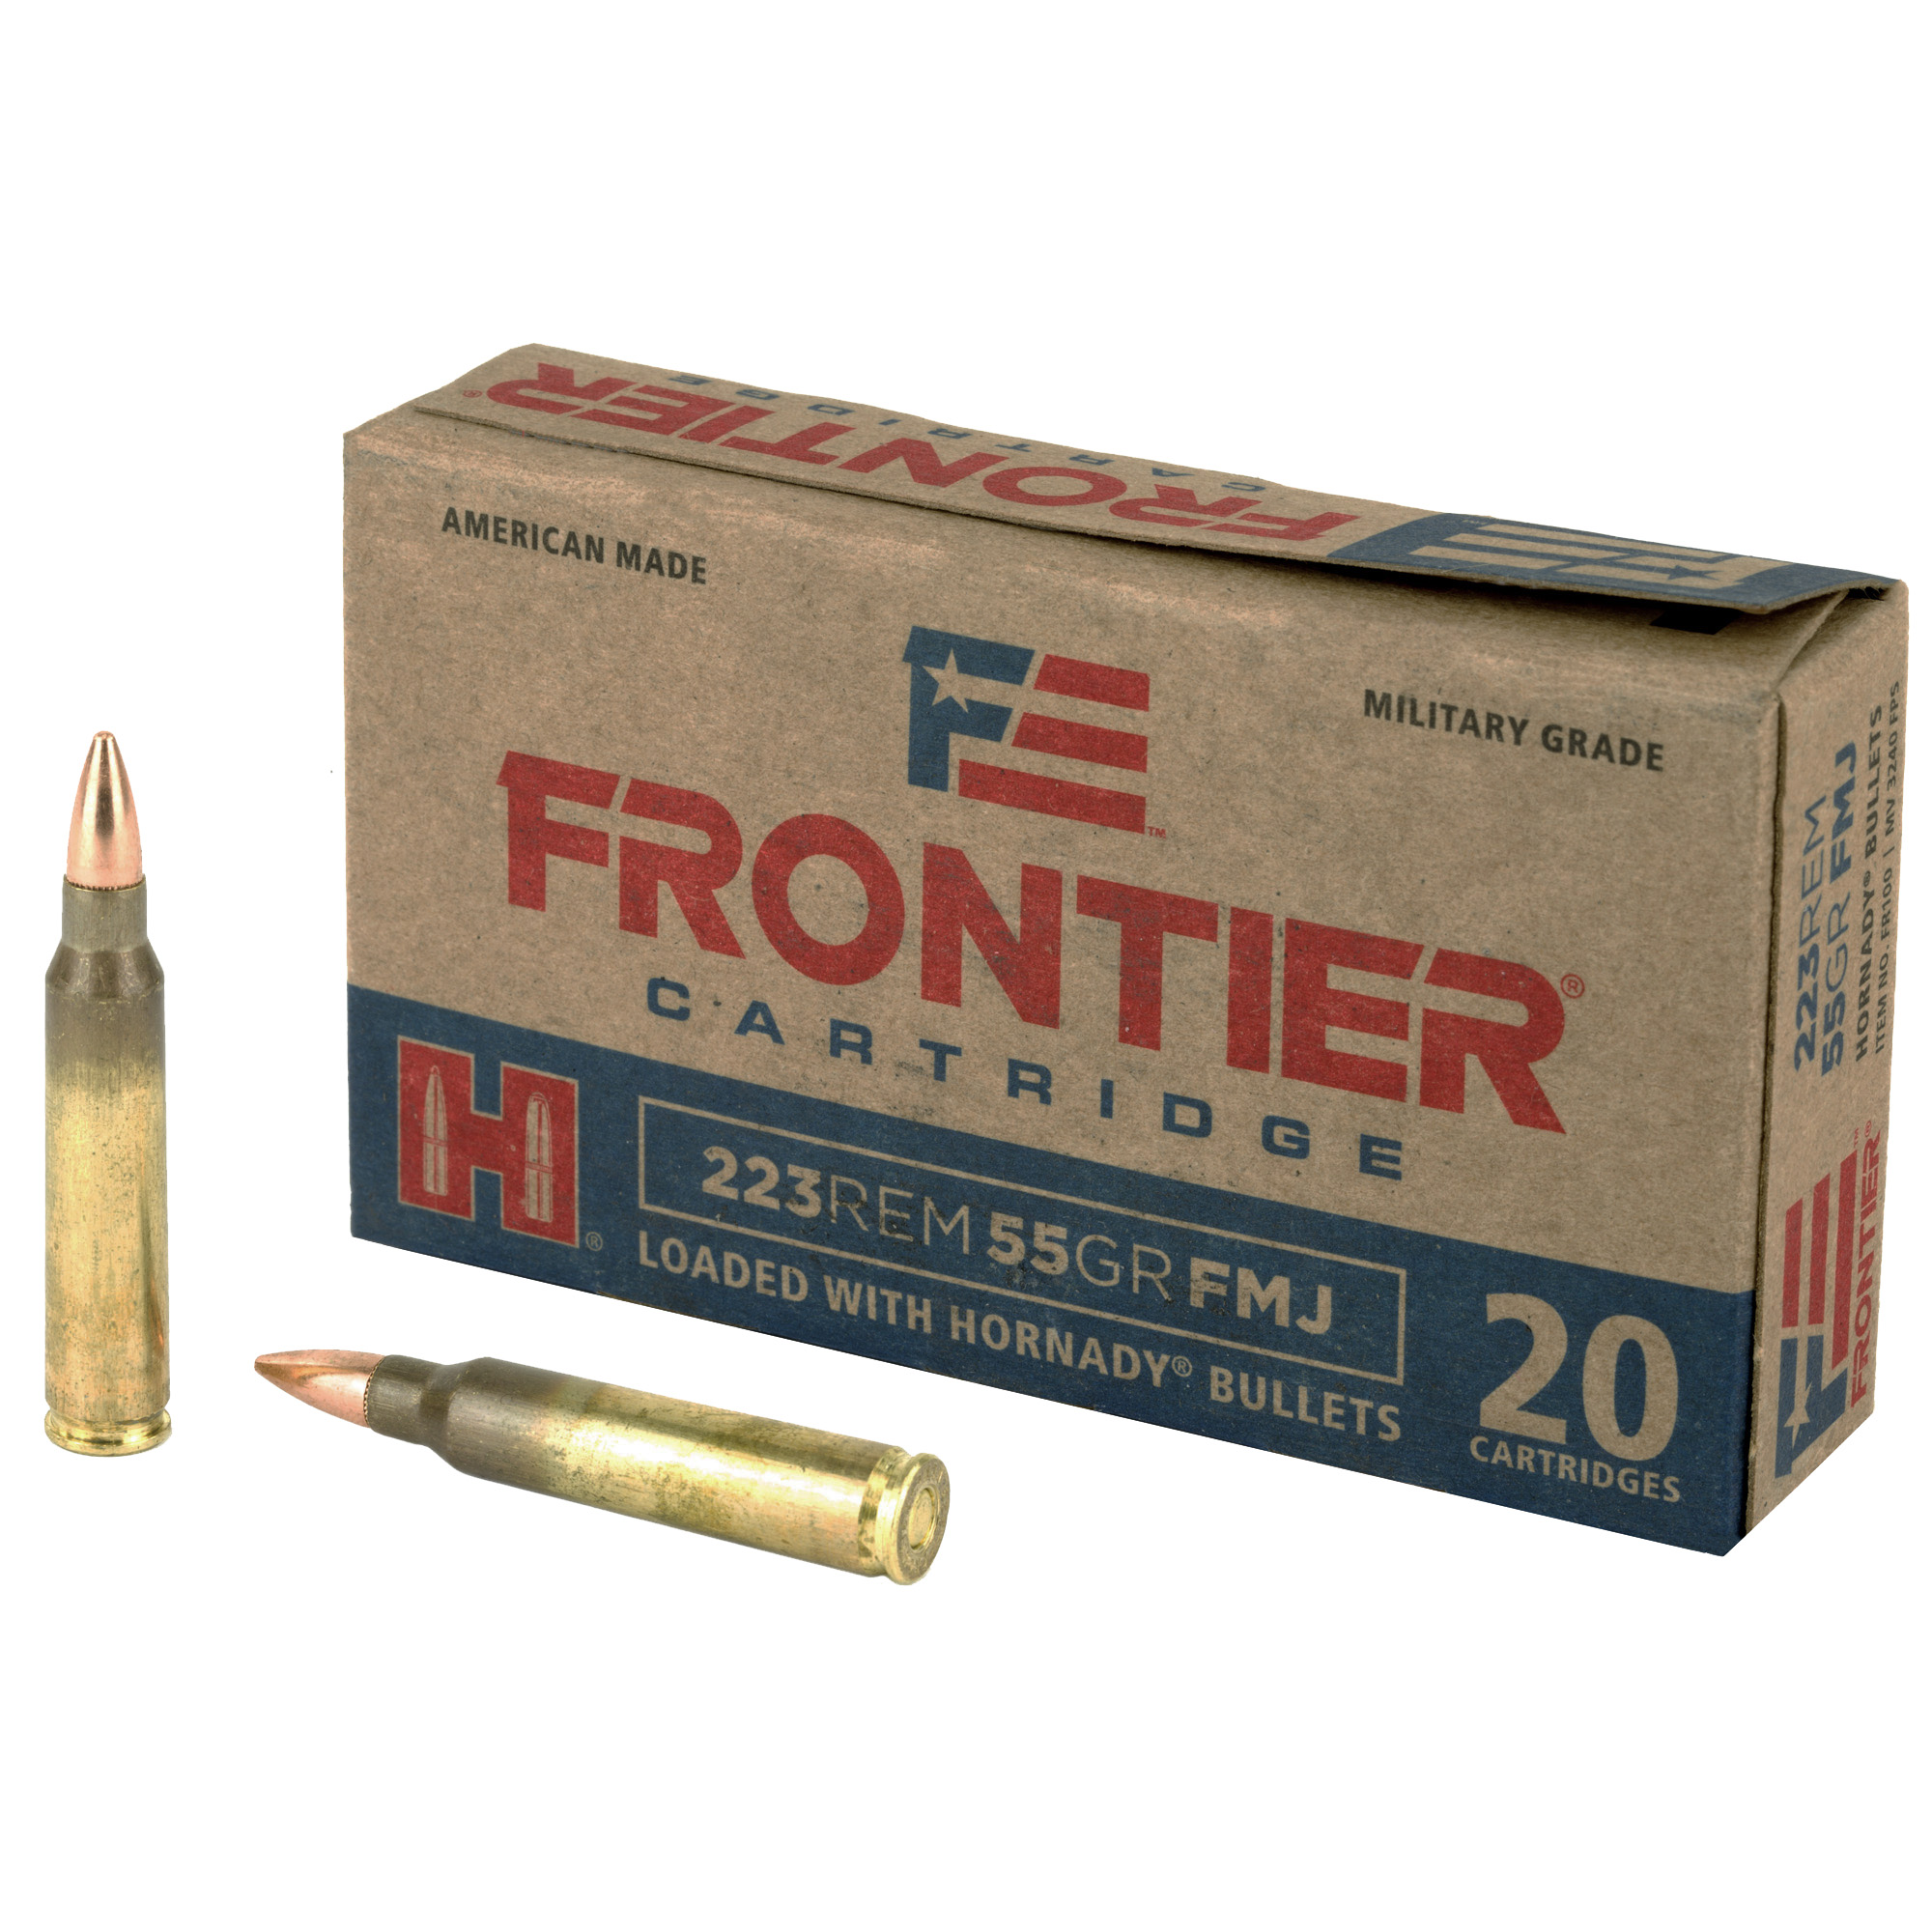 Frontier Cartridge 223 Rem 55 gr FMJ - 20 Round Box